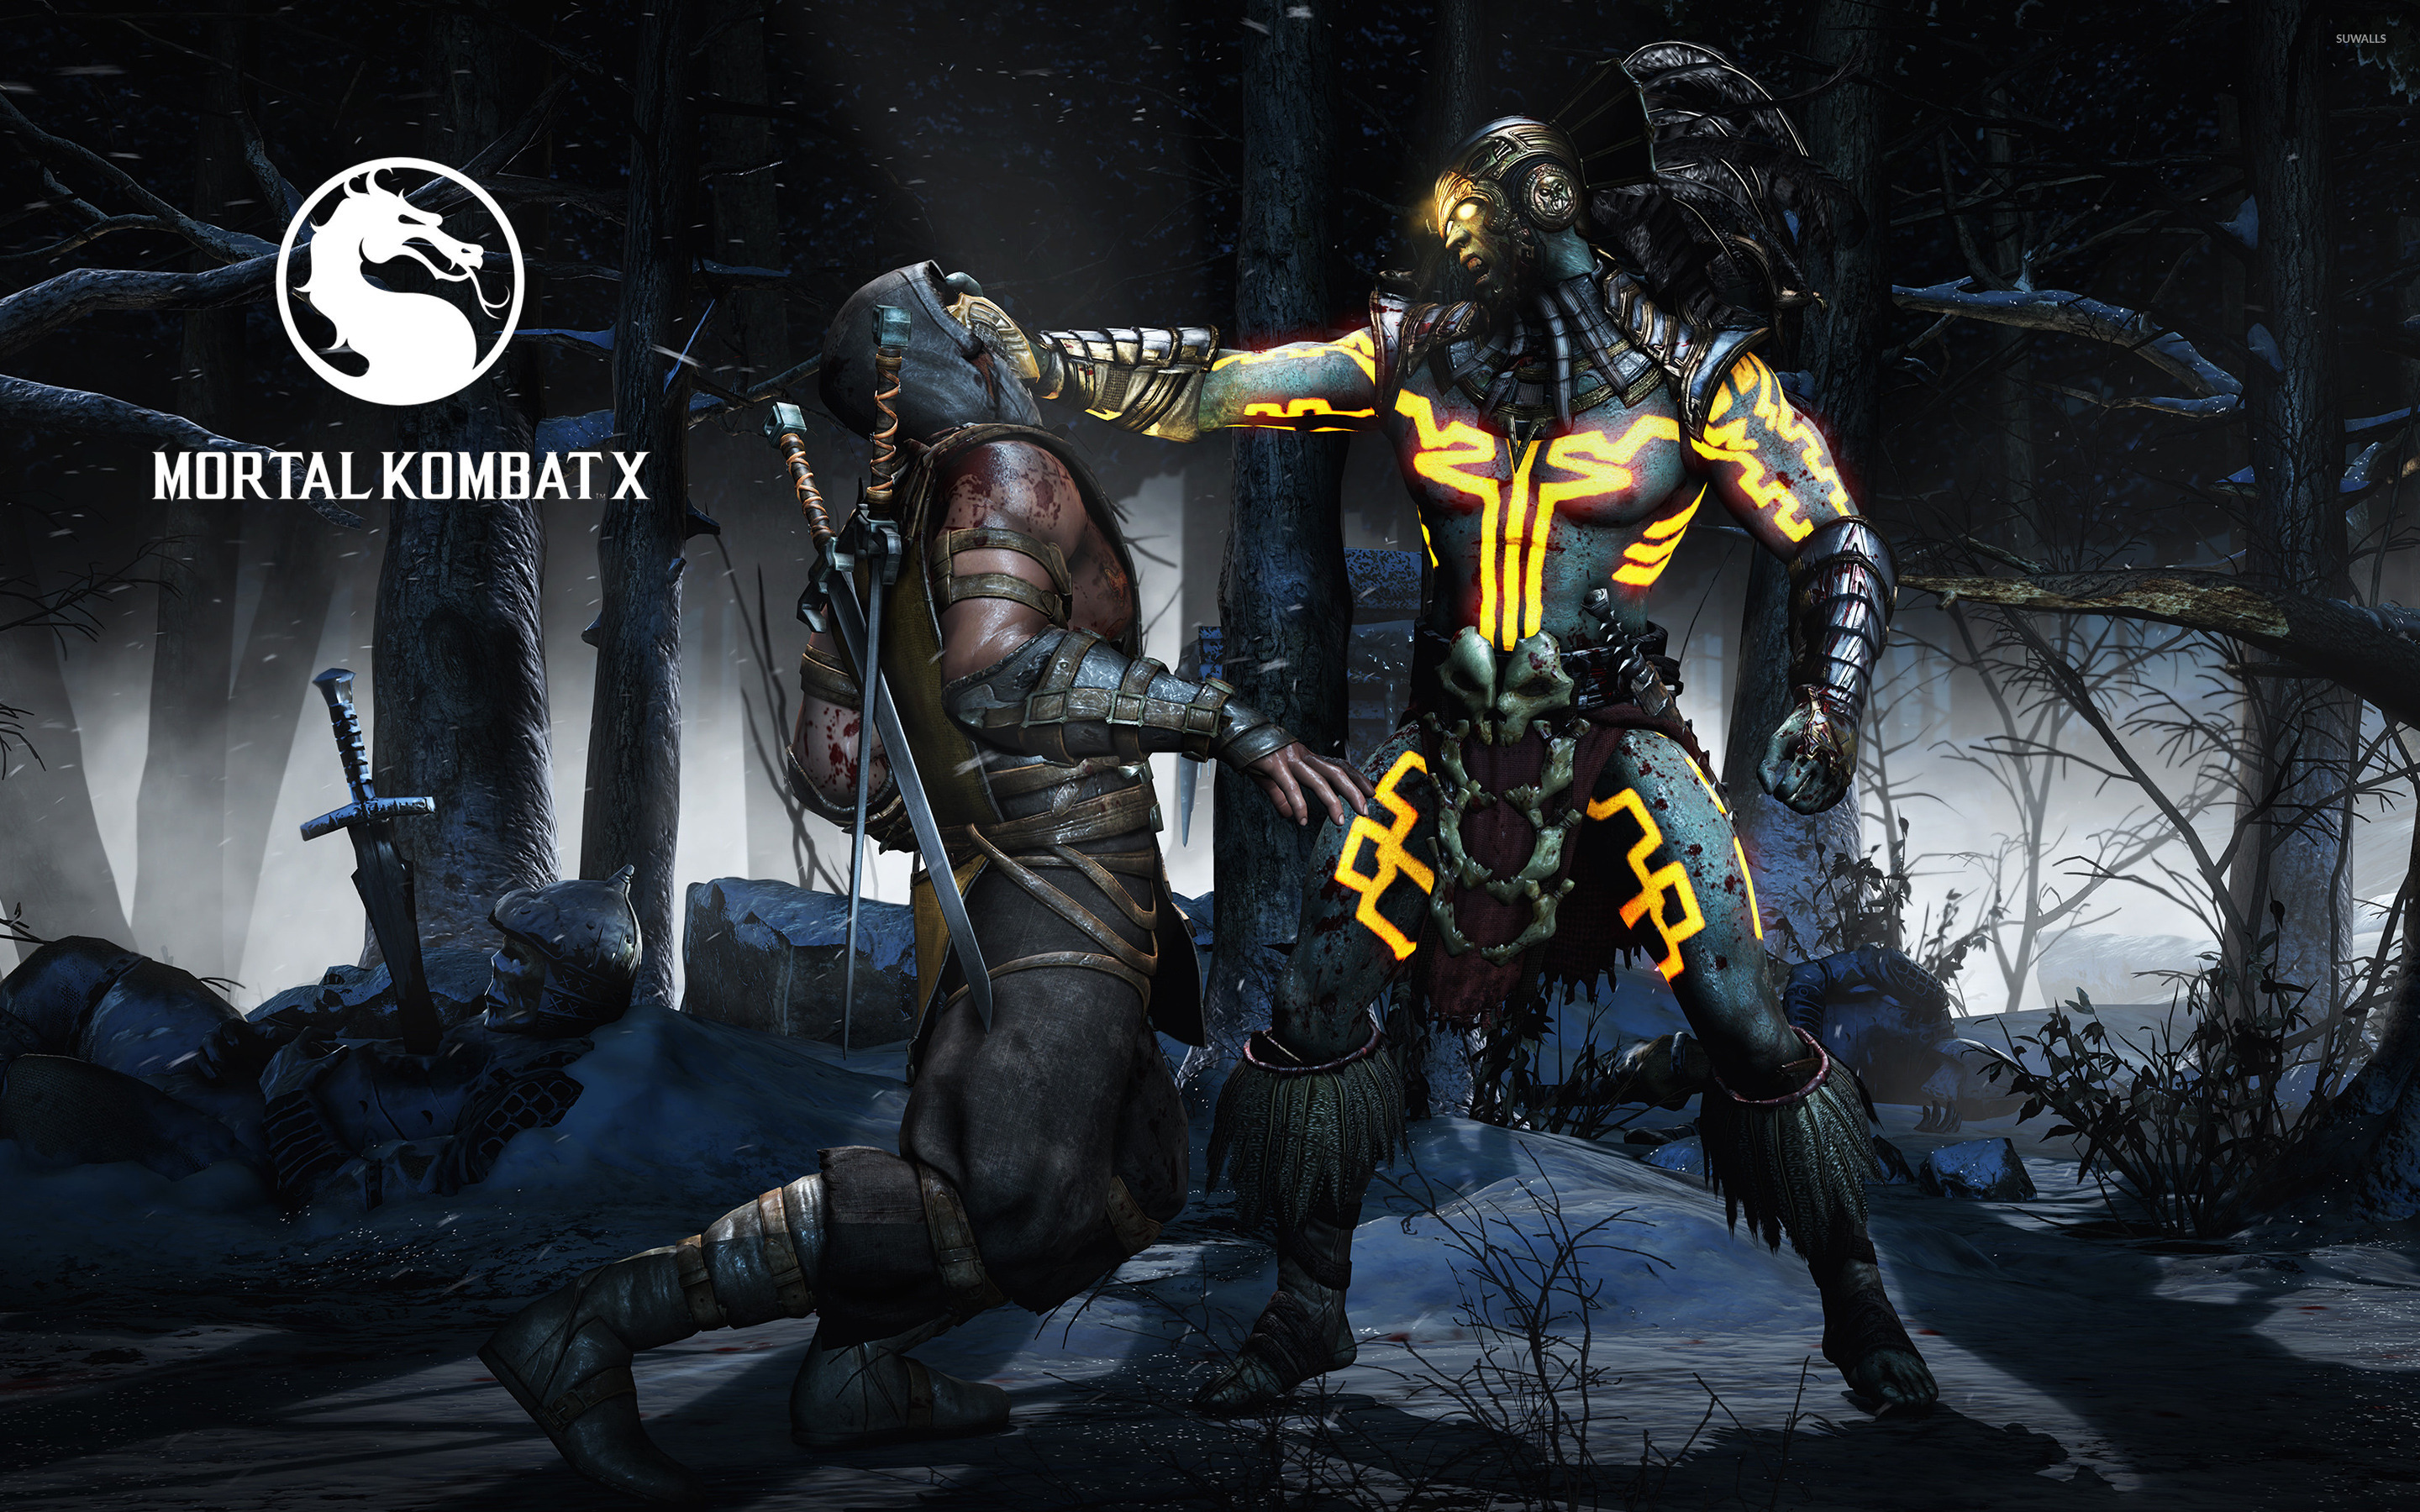 Mortal Kombat Game Wallpapers Hd Wallpaper For Desktop